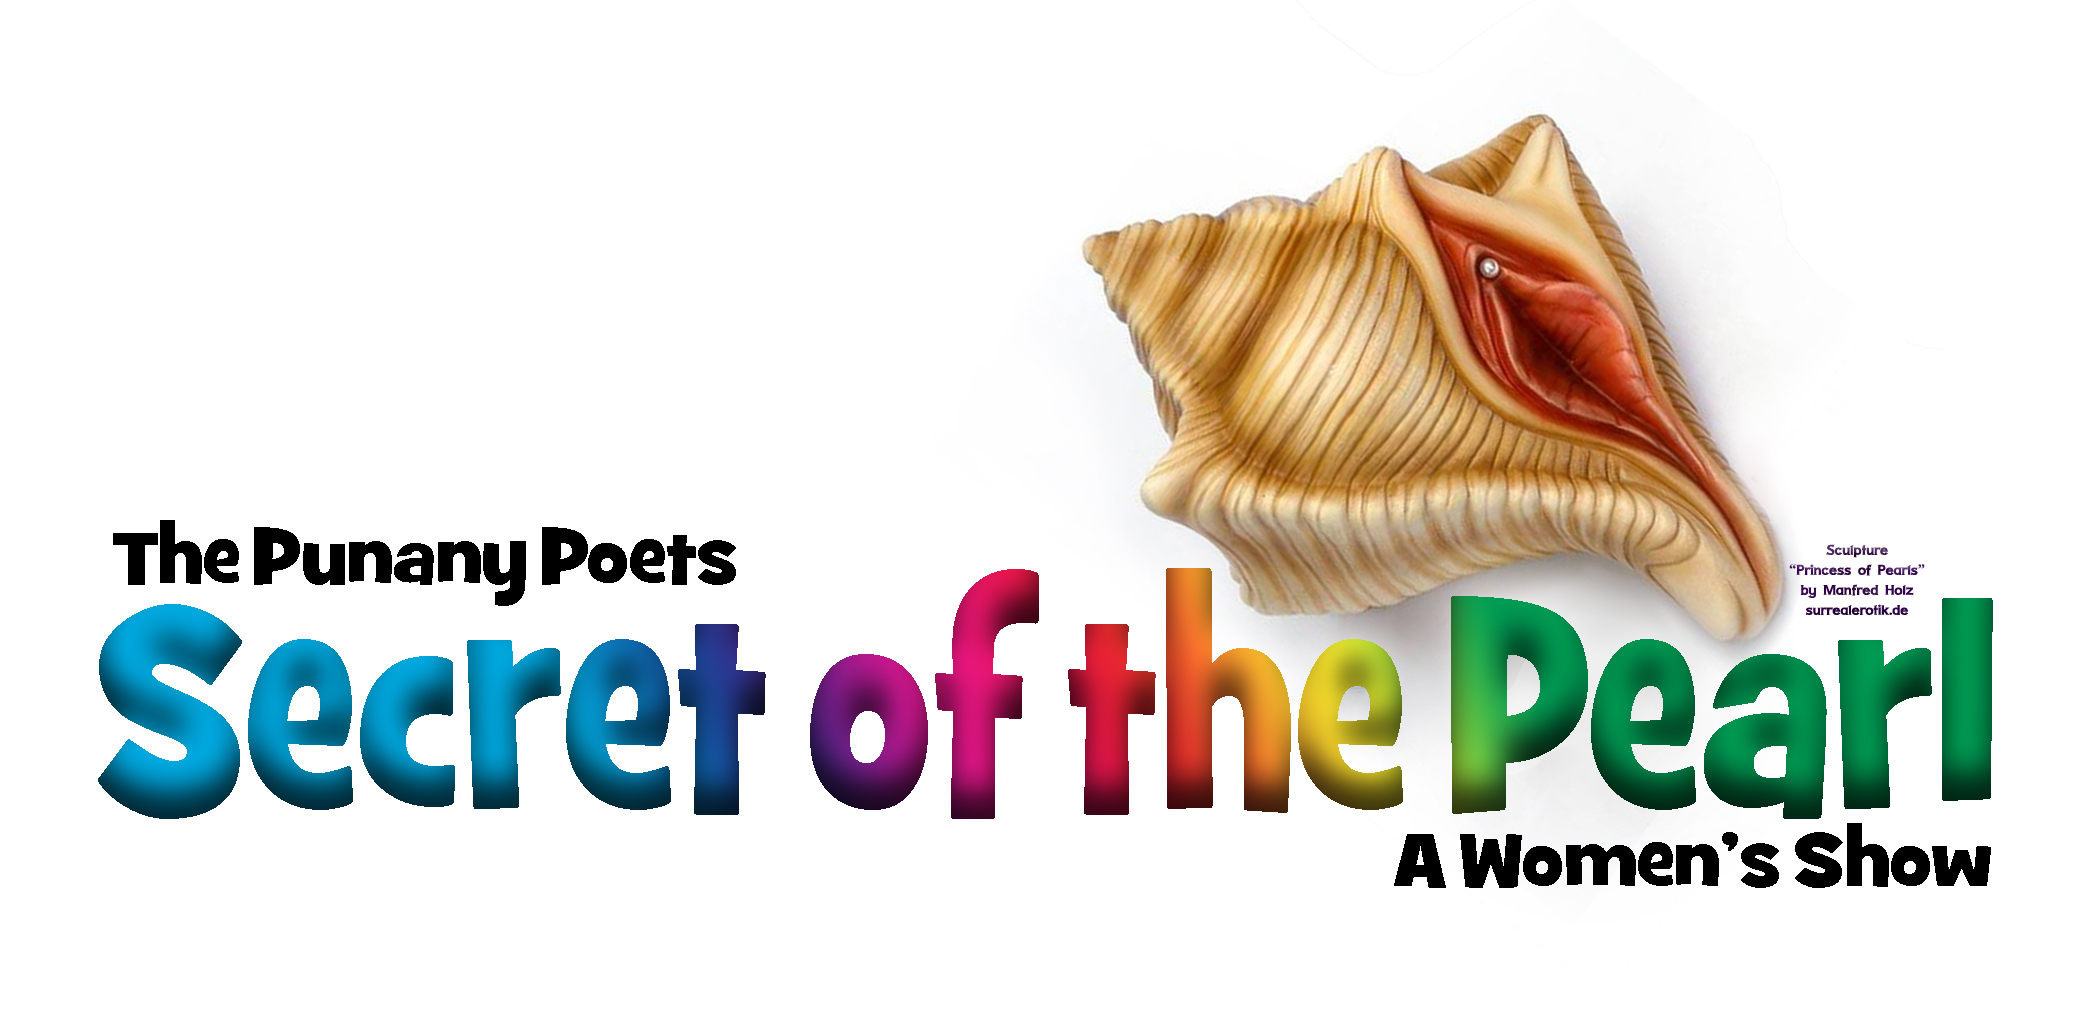 The Punany Poets Secret of the Pearl